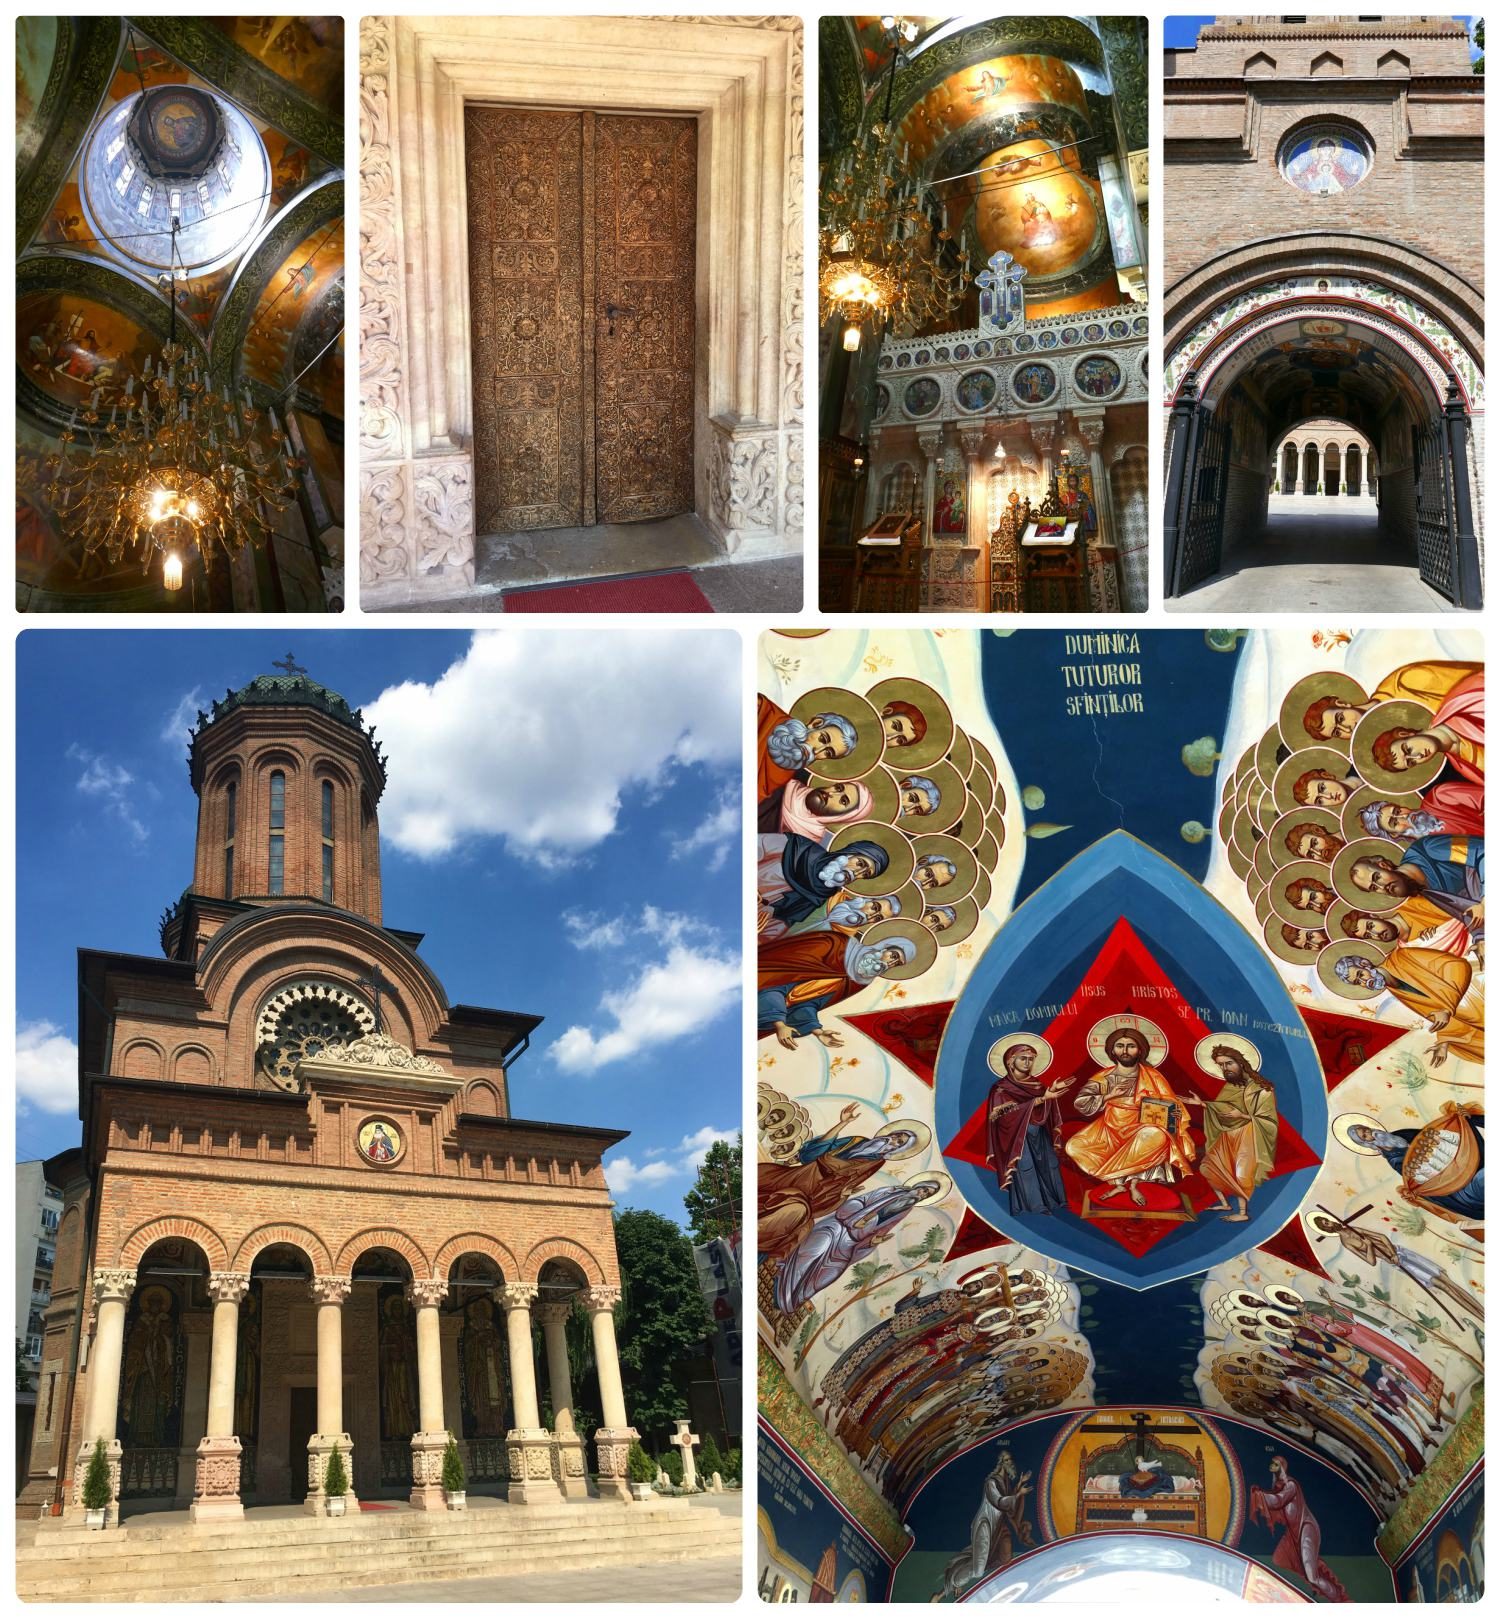 From the murals under the archway of the bell tower to the intricate wood carved doors, the Antim Monastery should definitely be on your sightseeing itenerary.